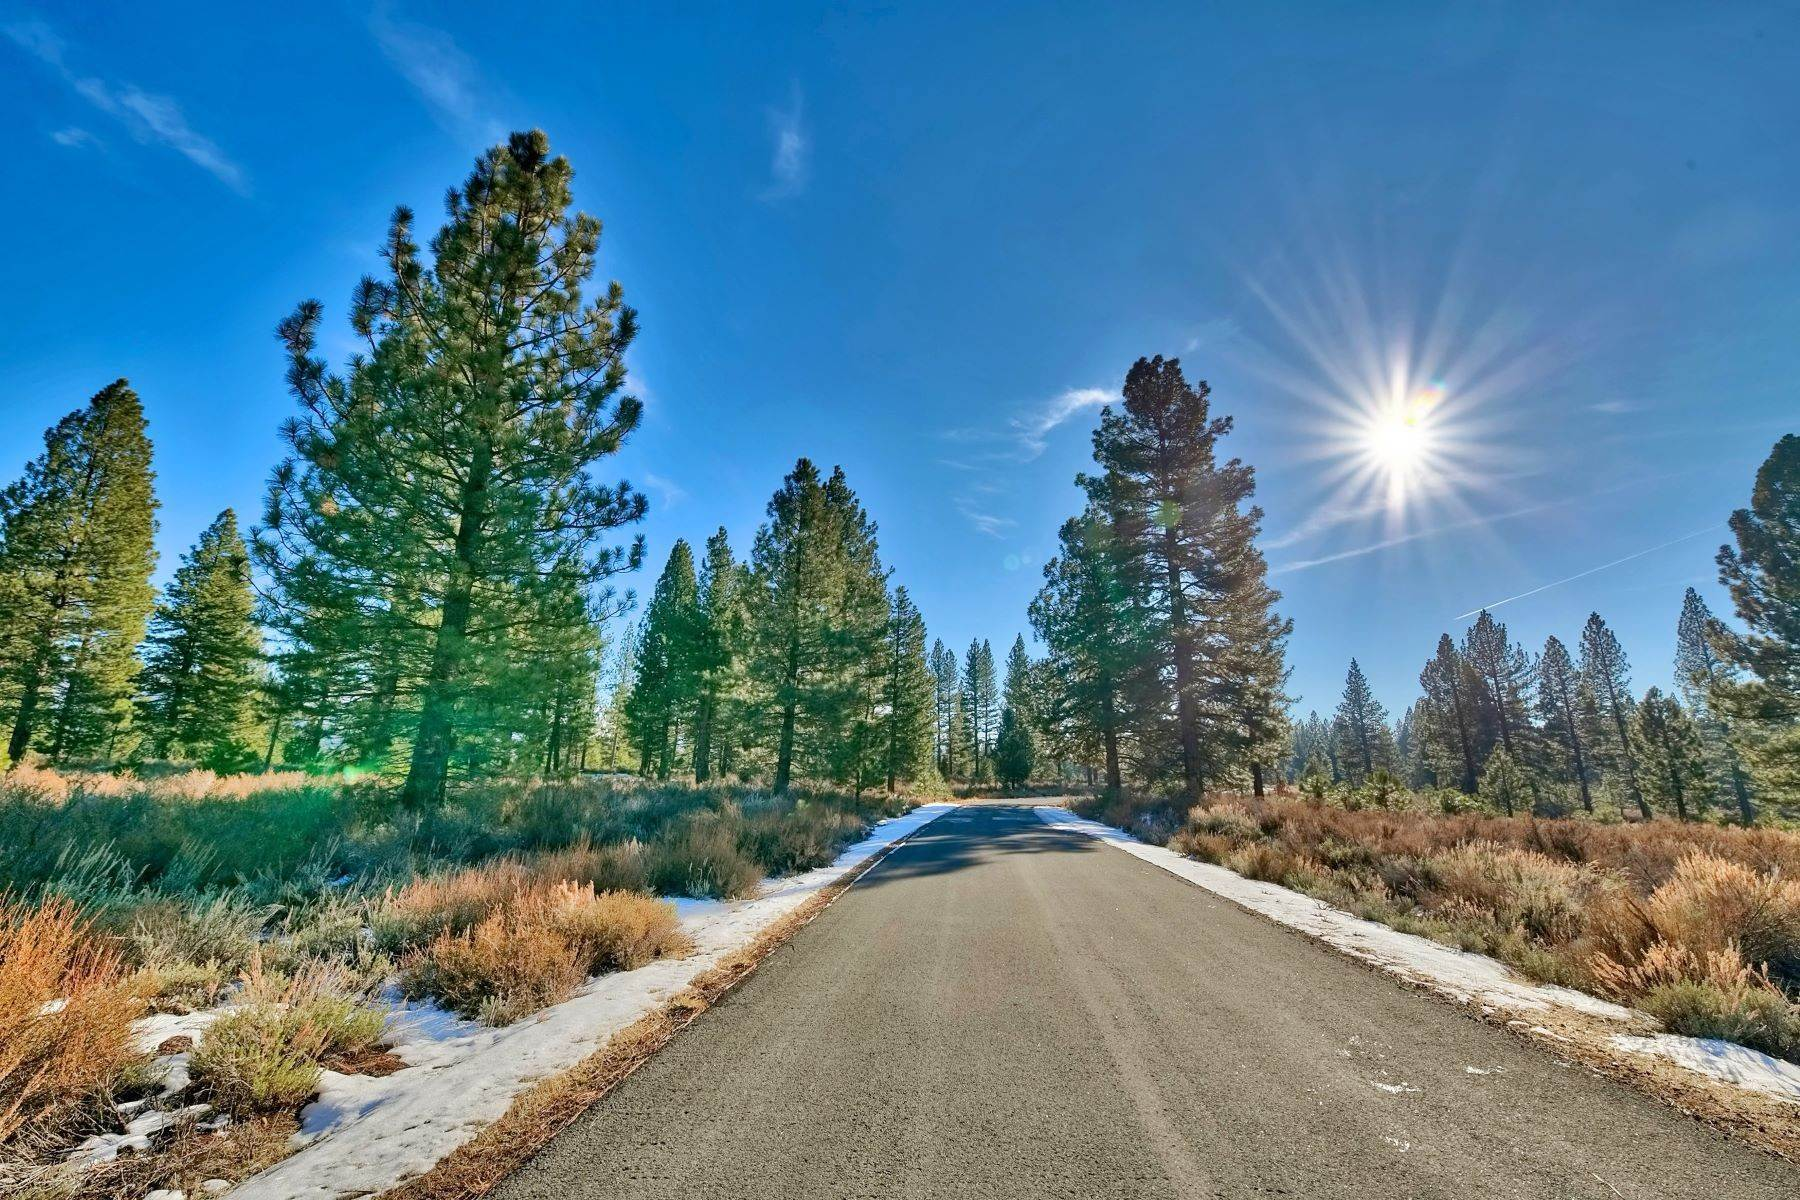 Land for Active at Creeks, Springs and Sierra Views 0 Highway 70, Unit 2B Portola, California 96122 United States